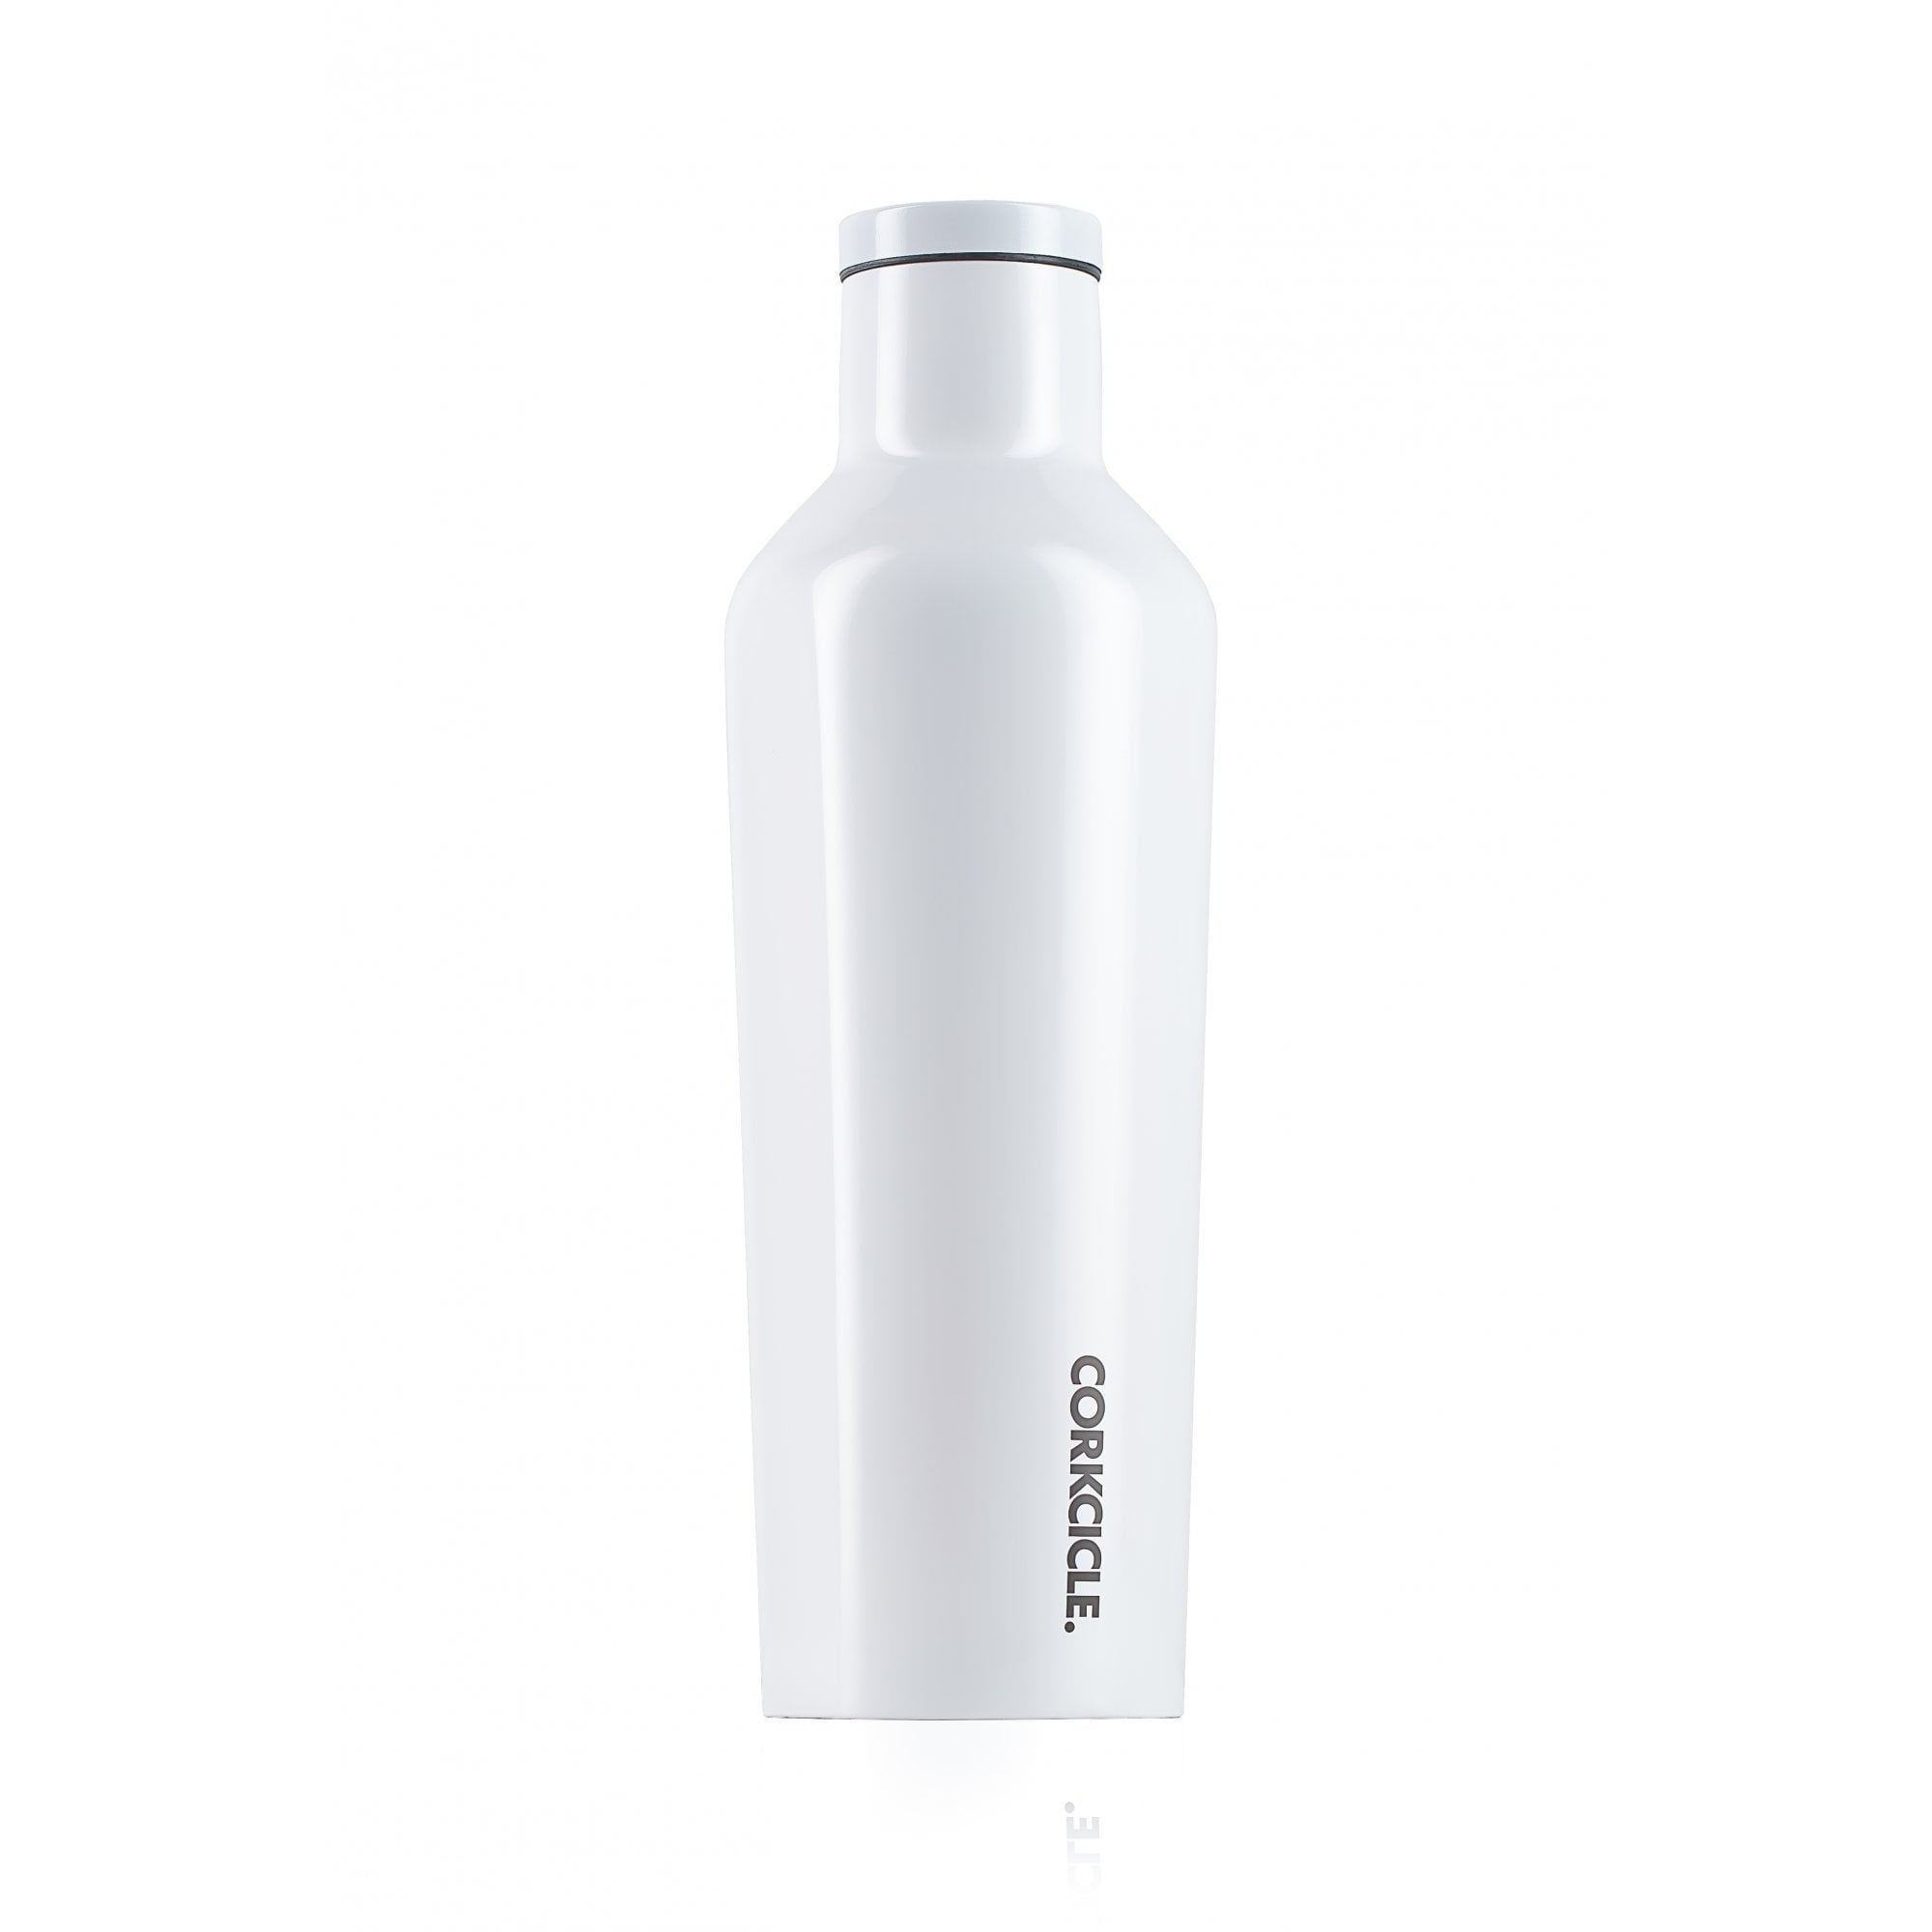 Corkcicle Canteen 16oz/475ml - Dipped Modernist White